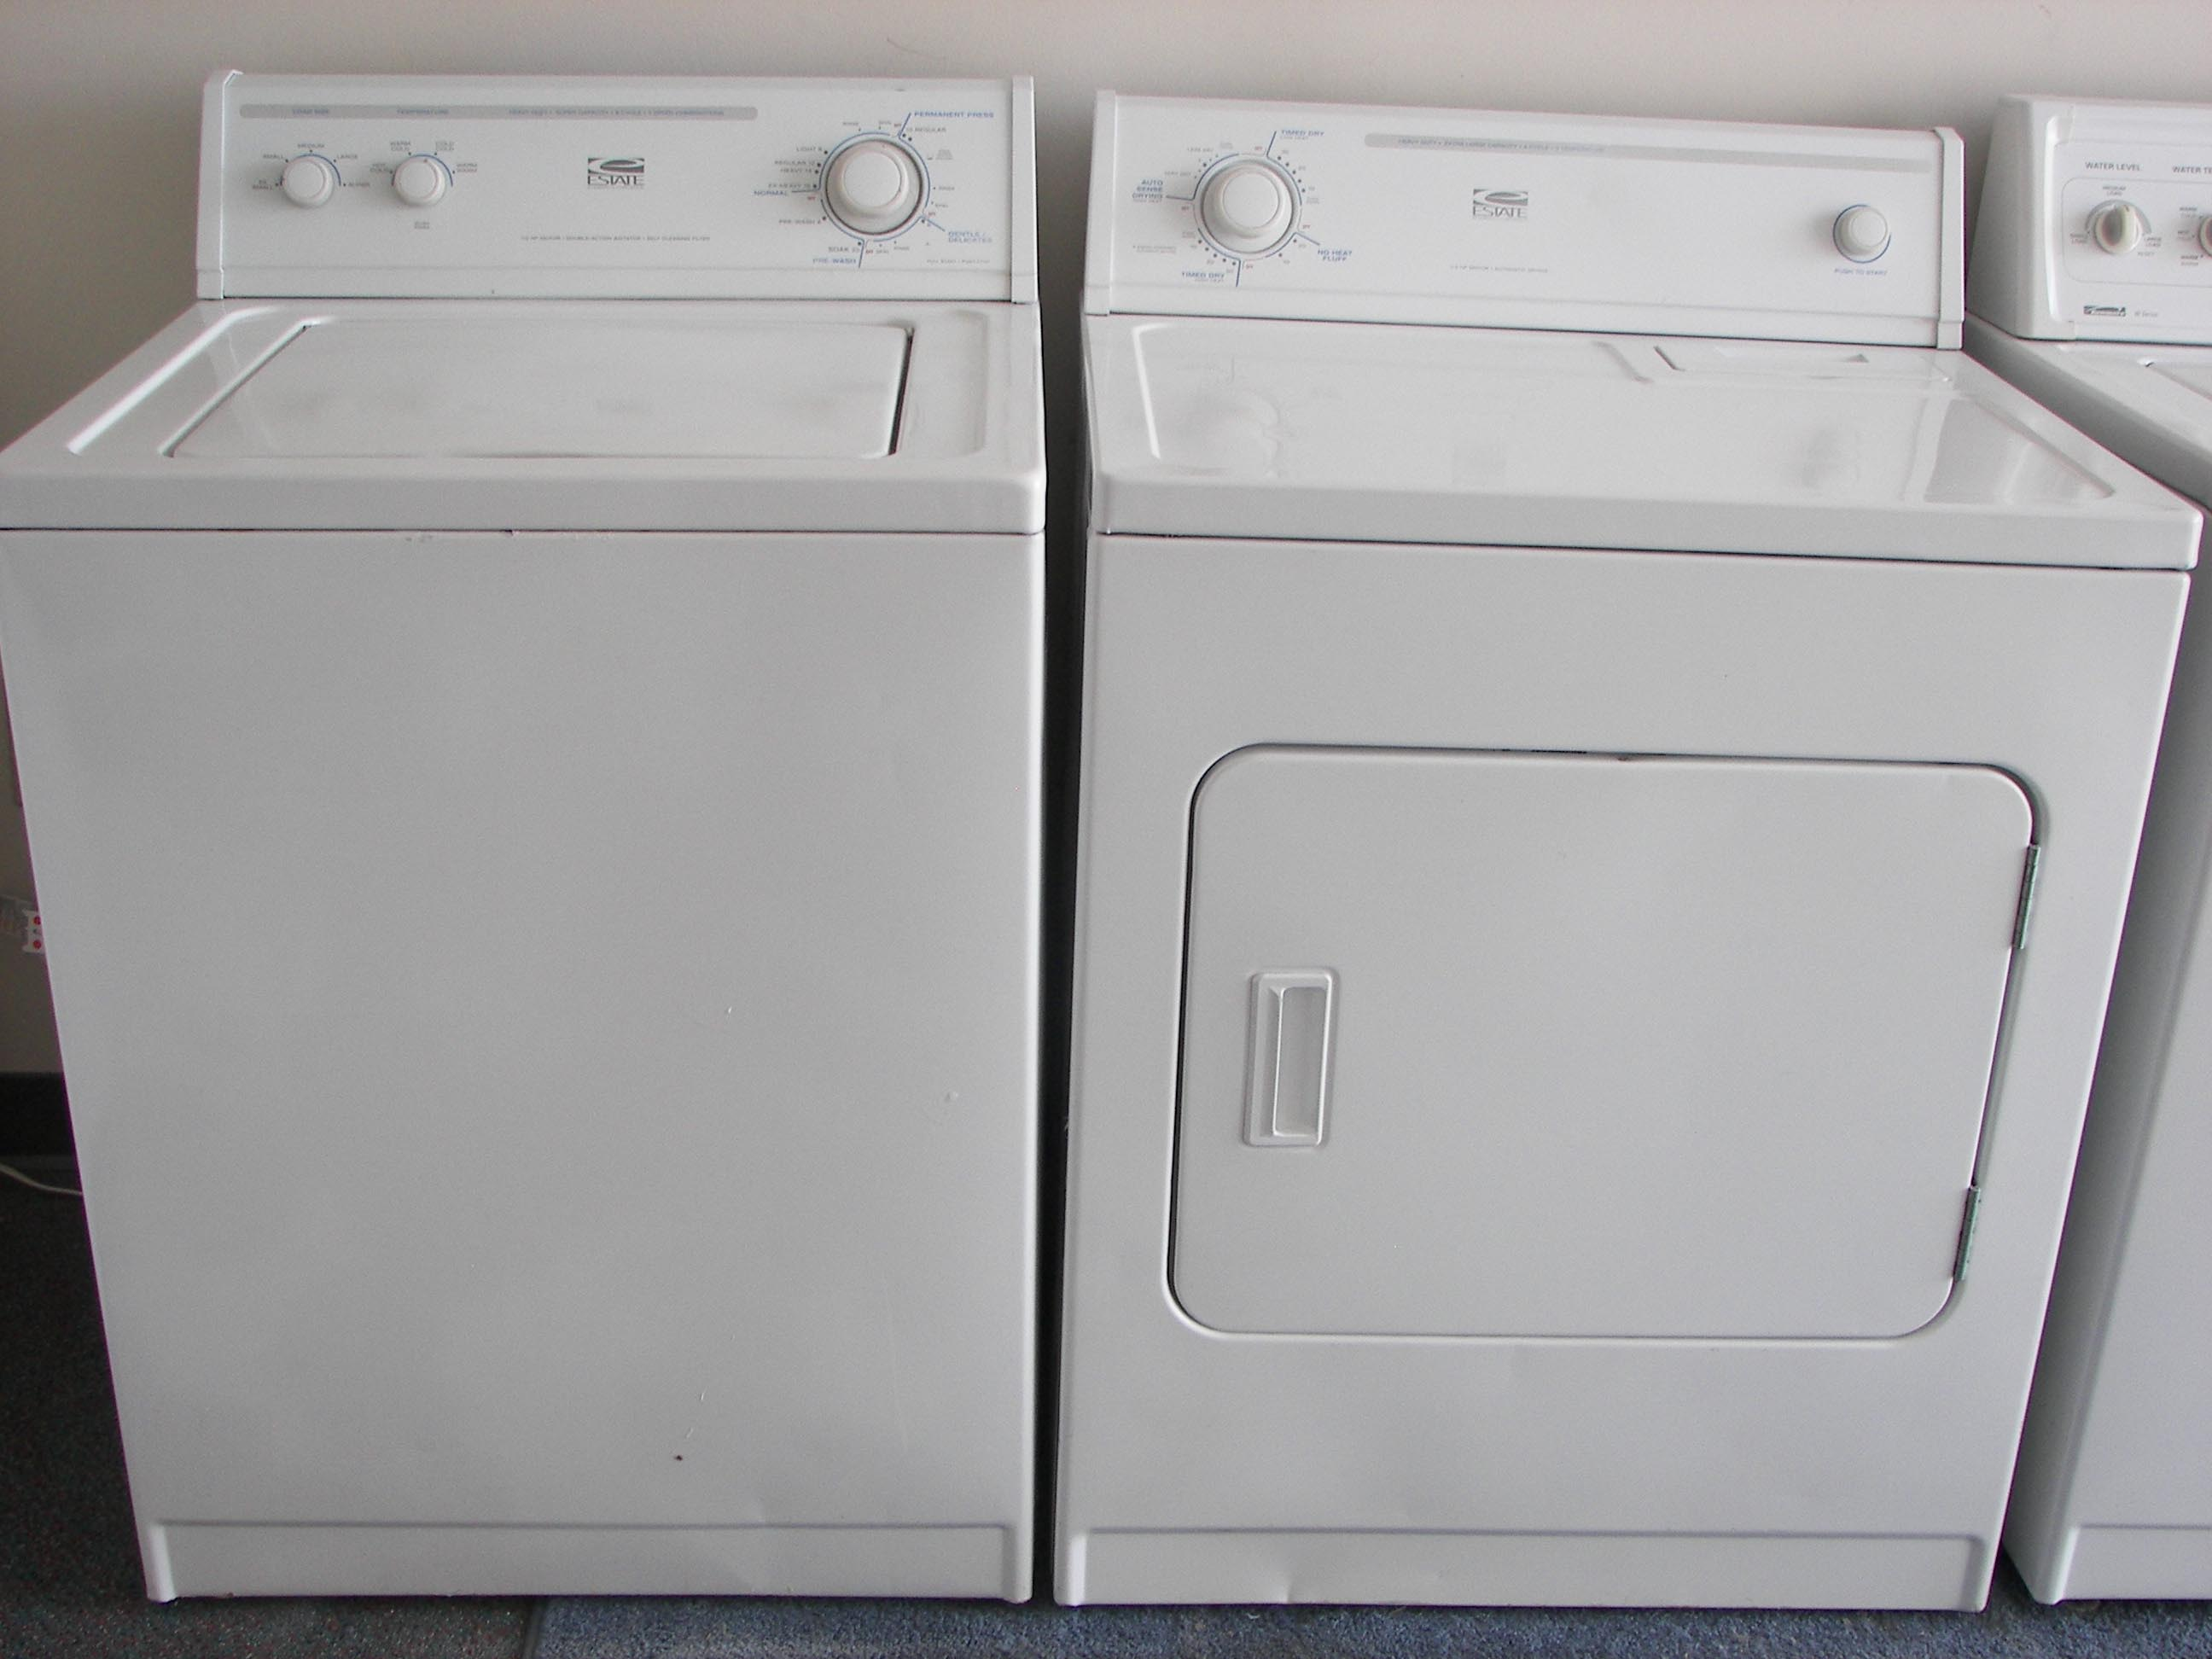 Whirlpool Estate Washer And Dryer Set